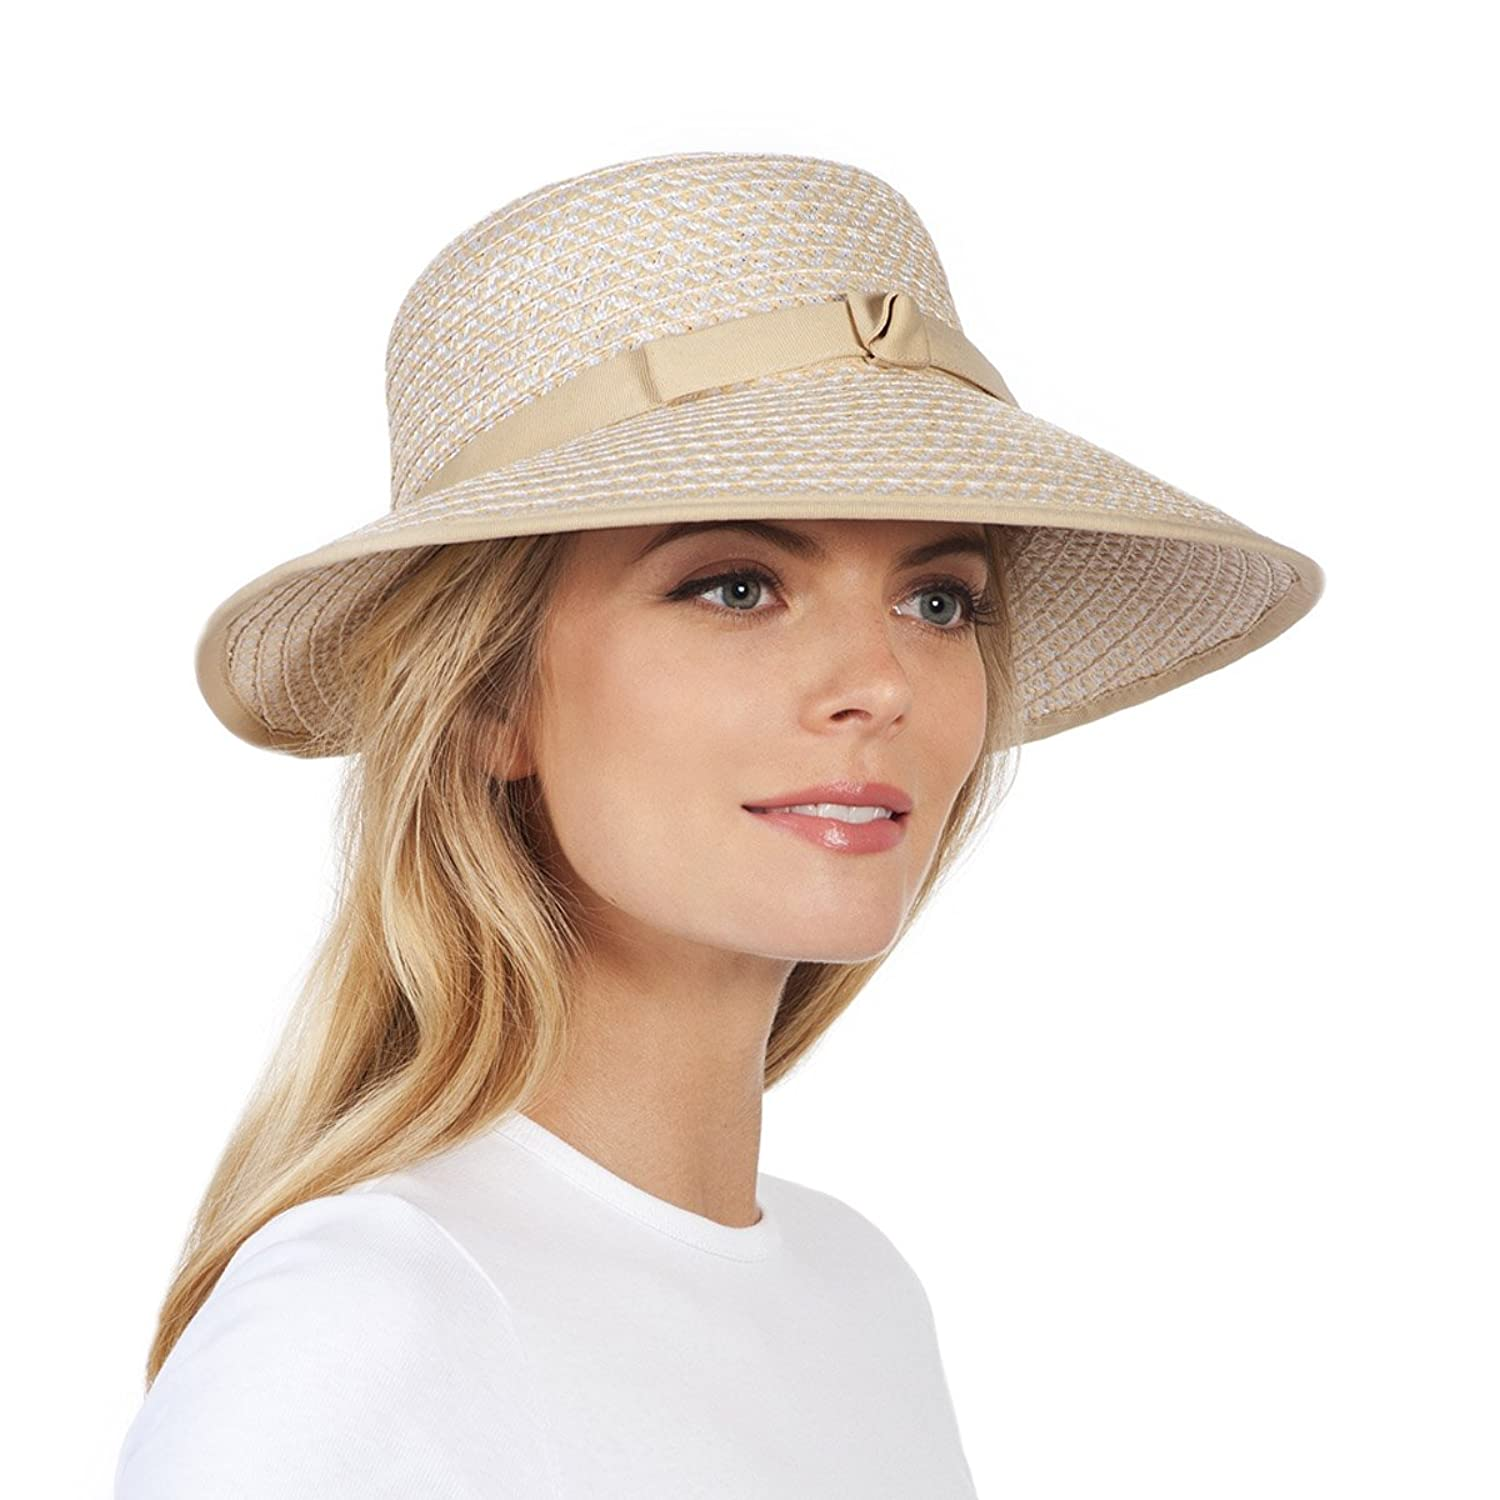 Women Hats from the best designers on YOOX. Discover our wide array of products and shop online: easy, quick returns and secure payment! Hats are among the most ostentatious accessories because they hide the head while making the wearer more visible.